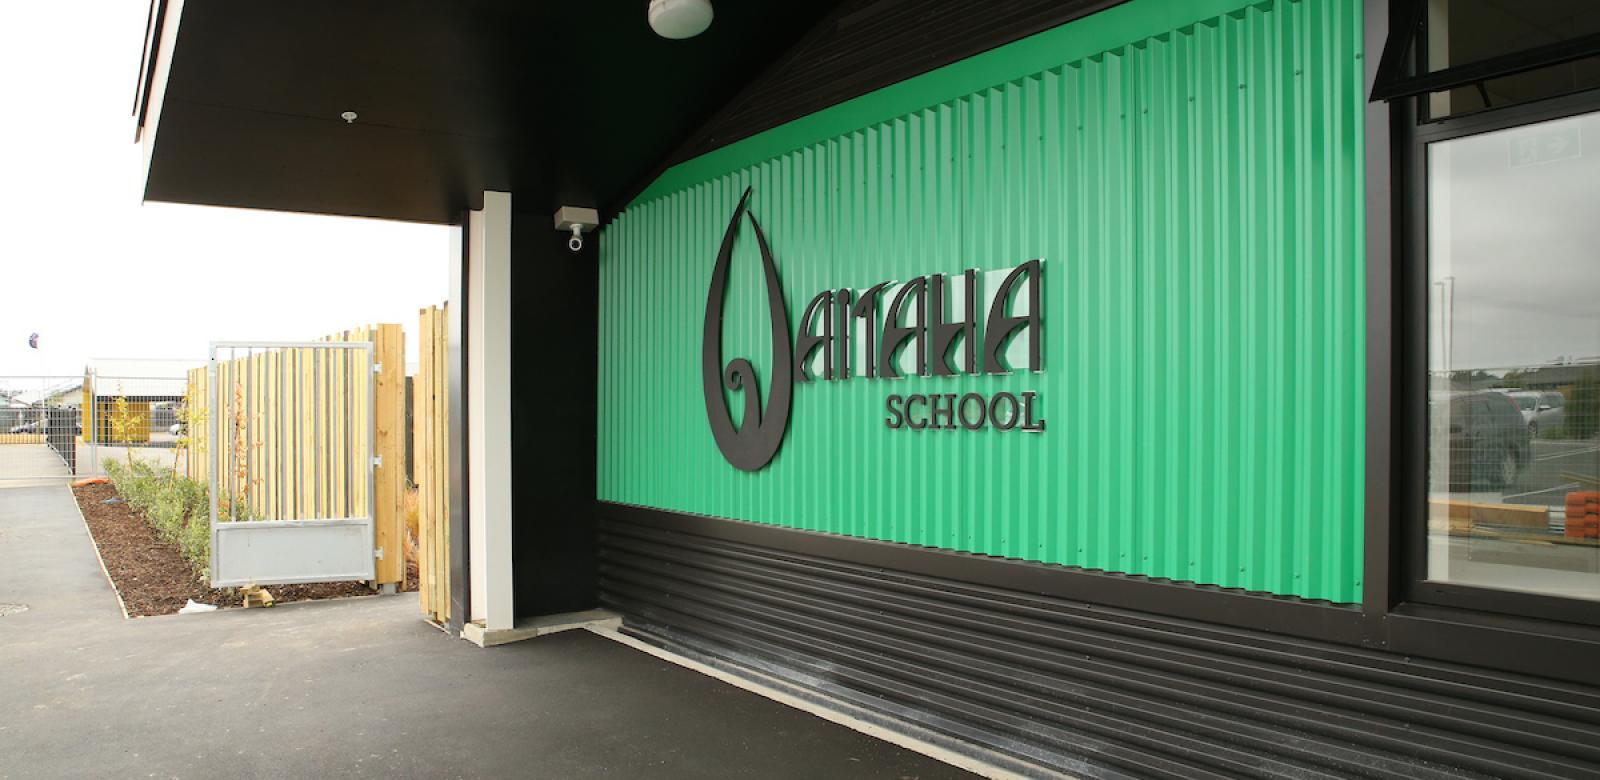 Waitaha School, Christchurch